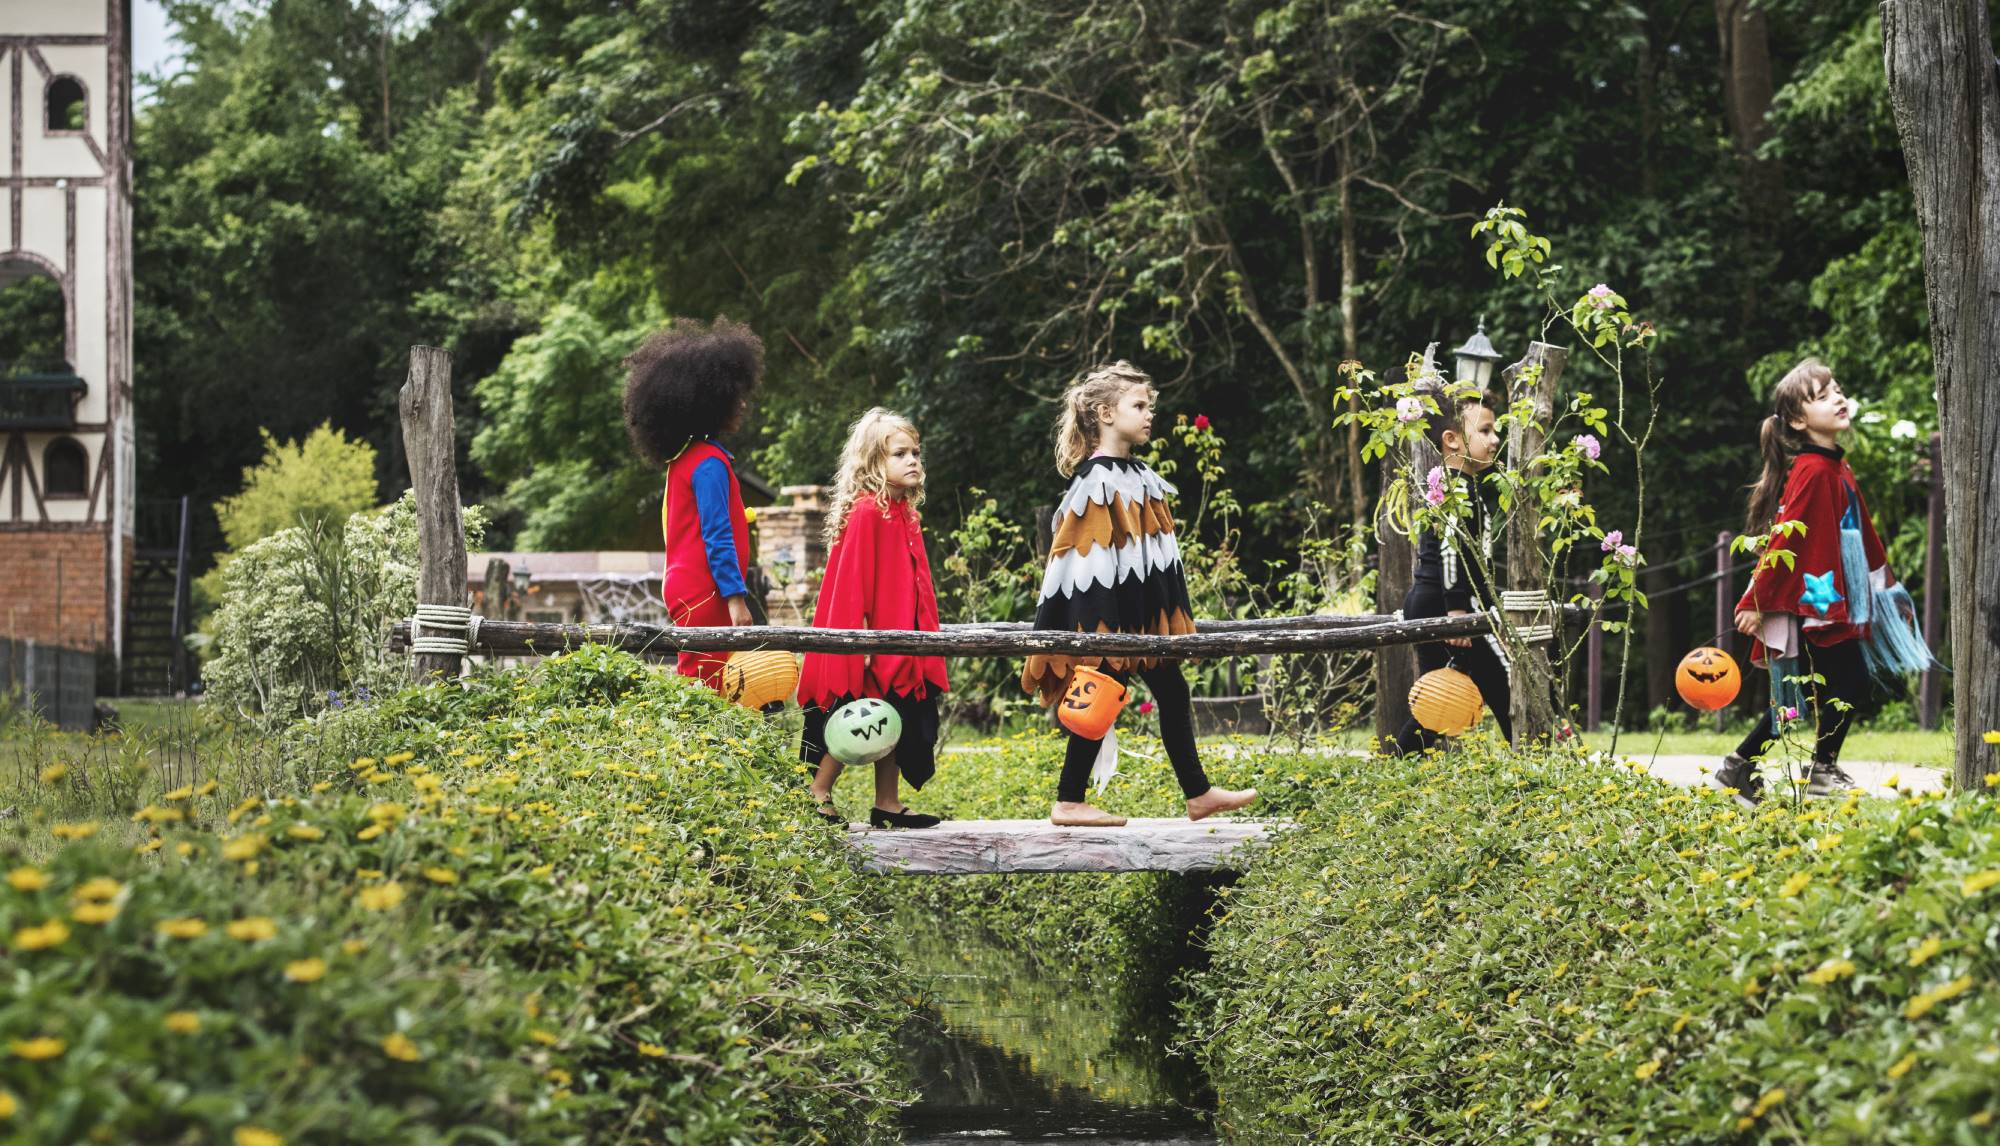 Kids walking on Halloween wearing costumes carrying candy, trick-or-treating - LawDepot